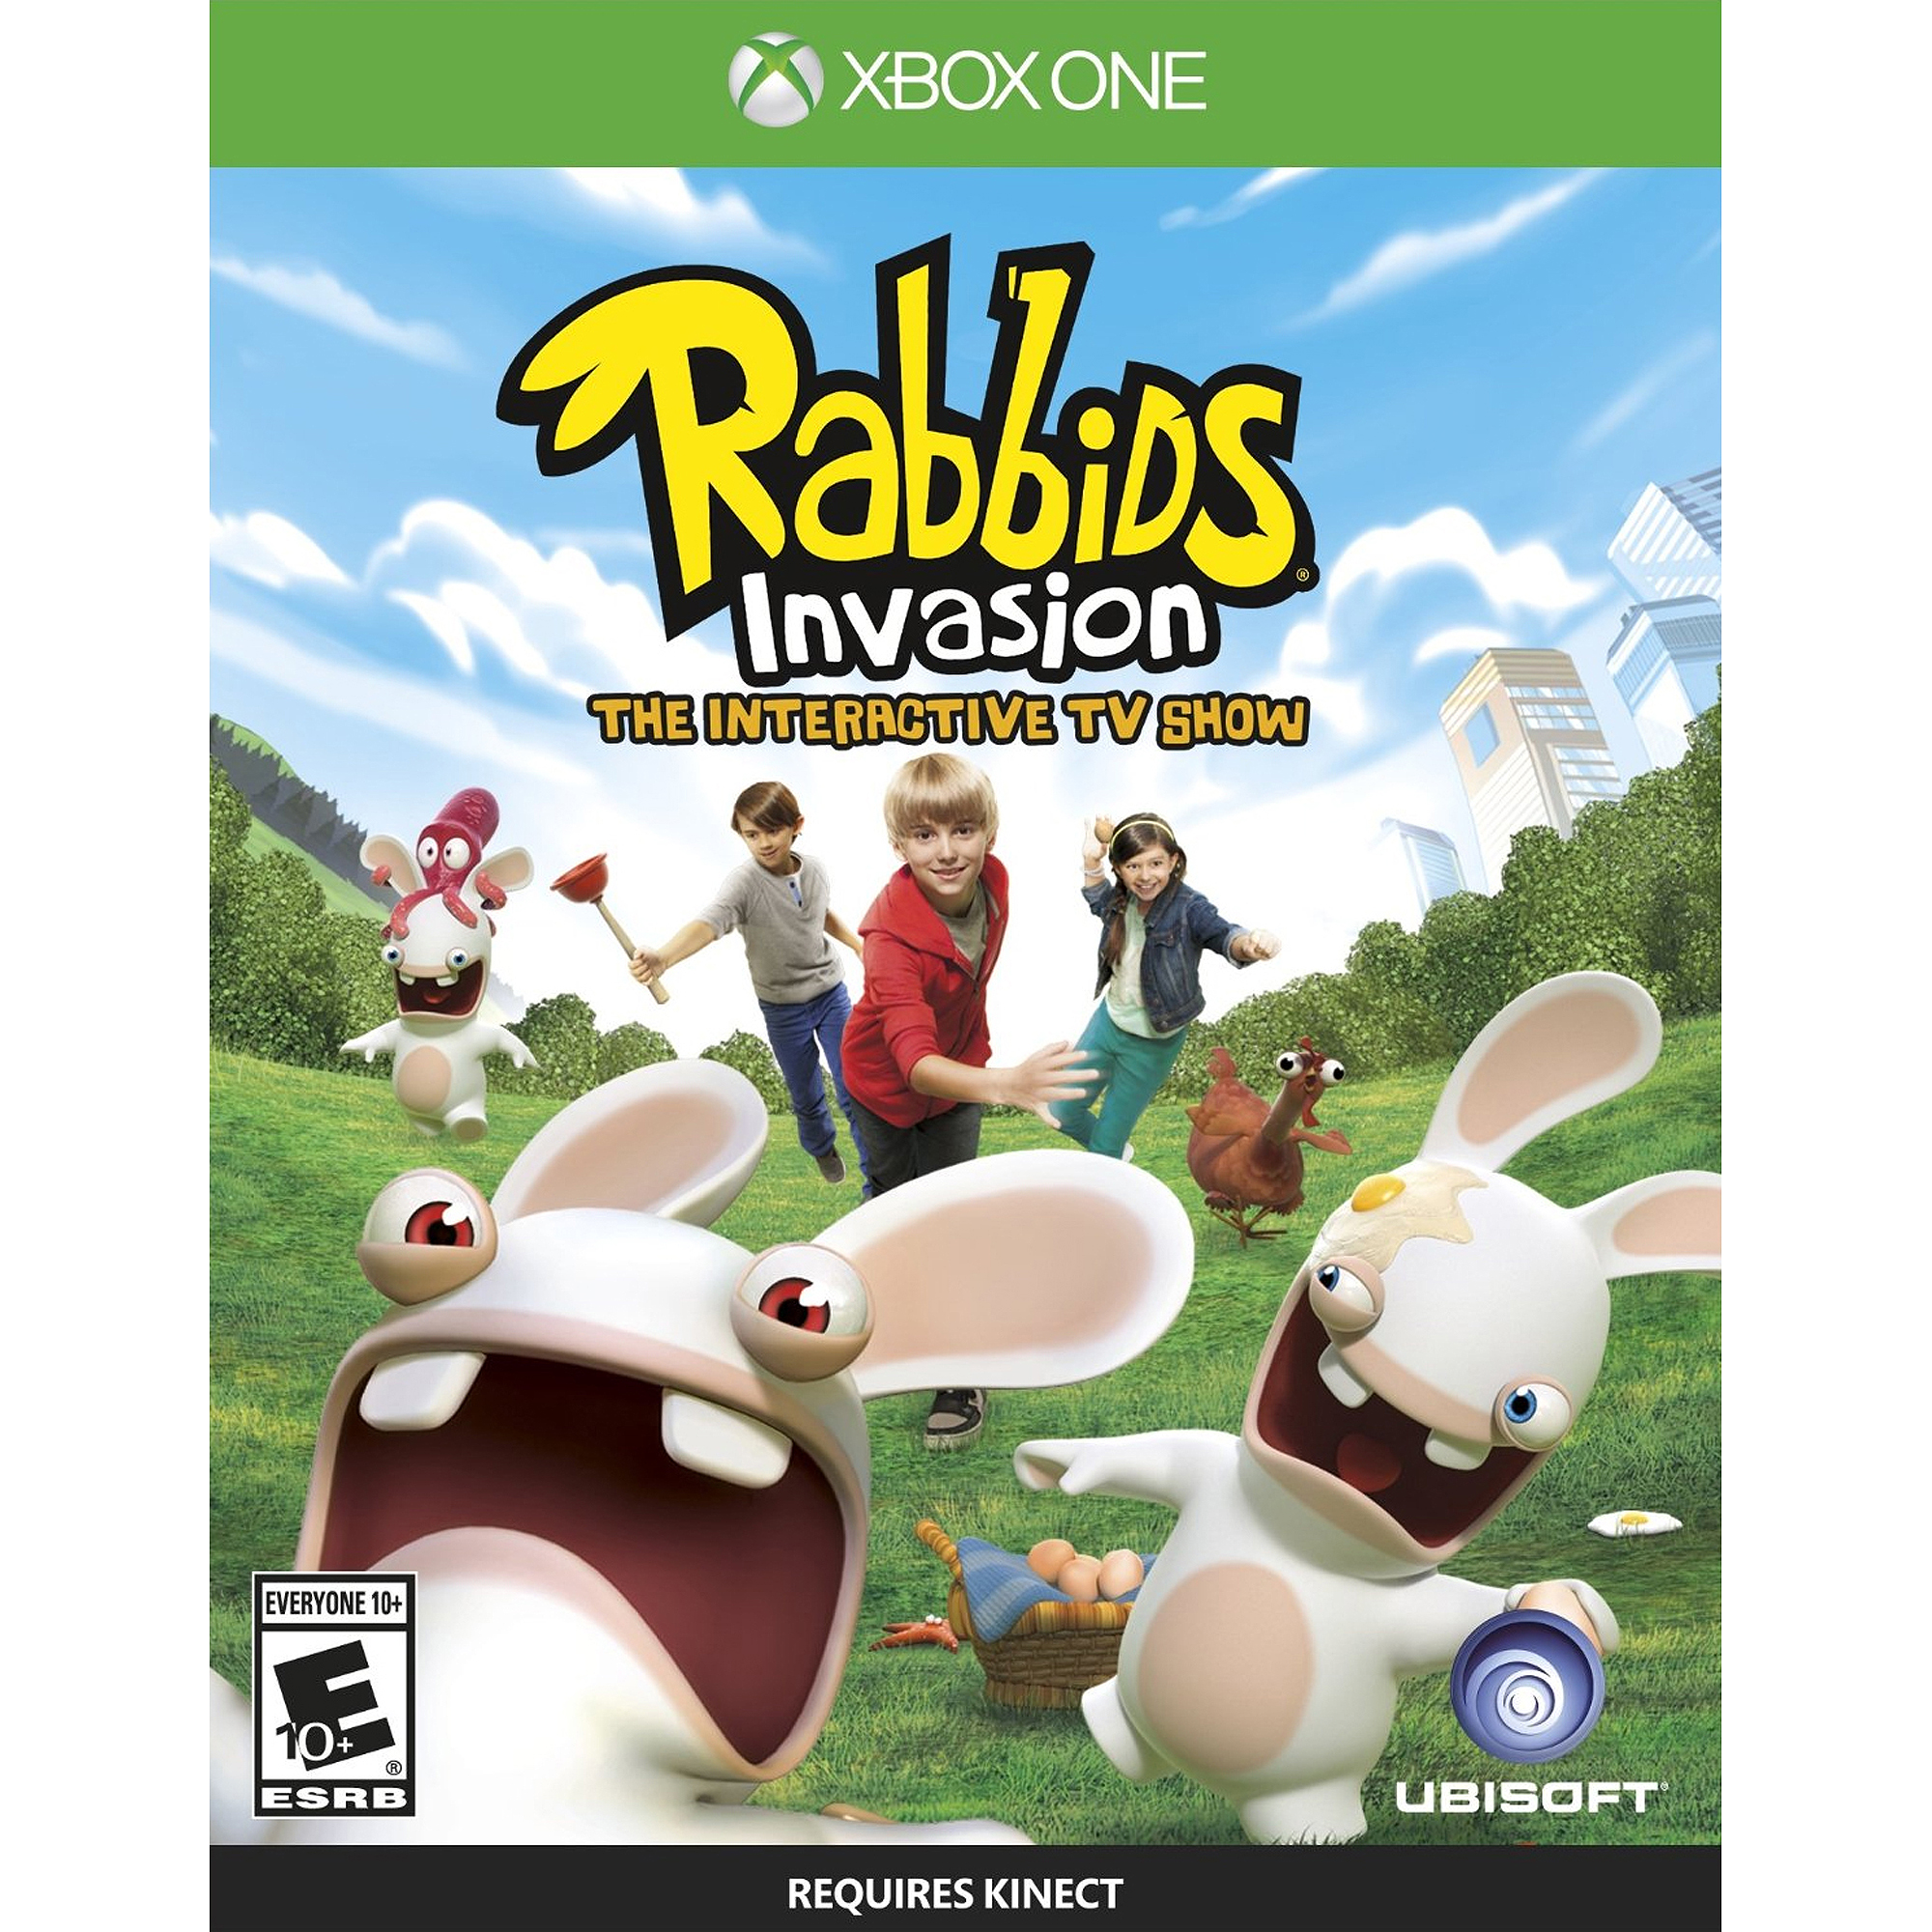 Rabbids Invasion (Xbox One) Ubisoft, 887256301767 by Ubisoft Entertainment SA